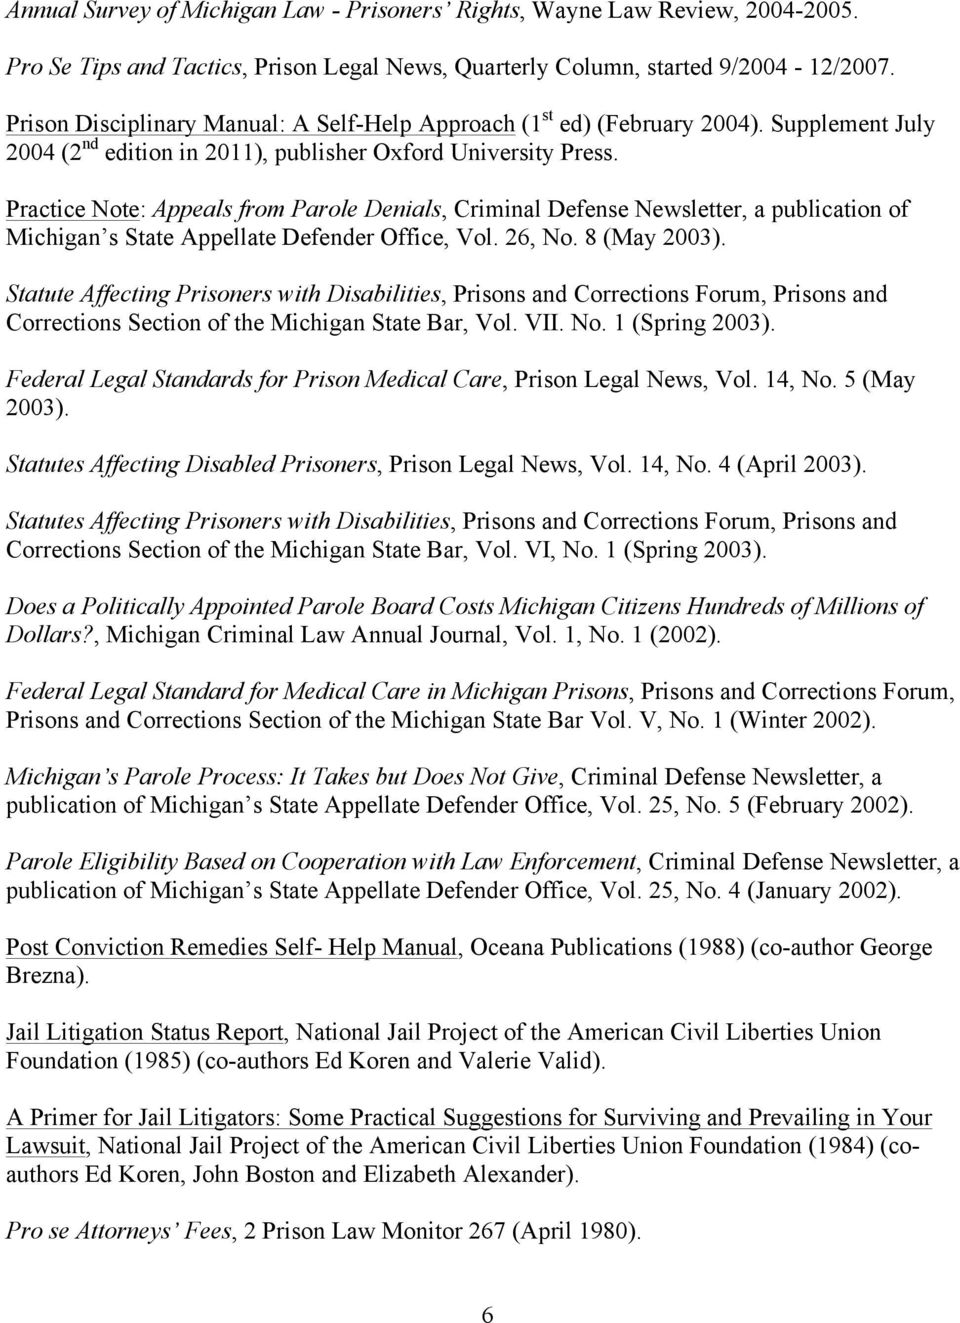 Practice Note: Appeals from Parole Denials, Criminal Defense Newsletter, a publication of Michigan s State Appellate Defender Office, Vol. 26, No. 8 (May 2003).